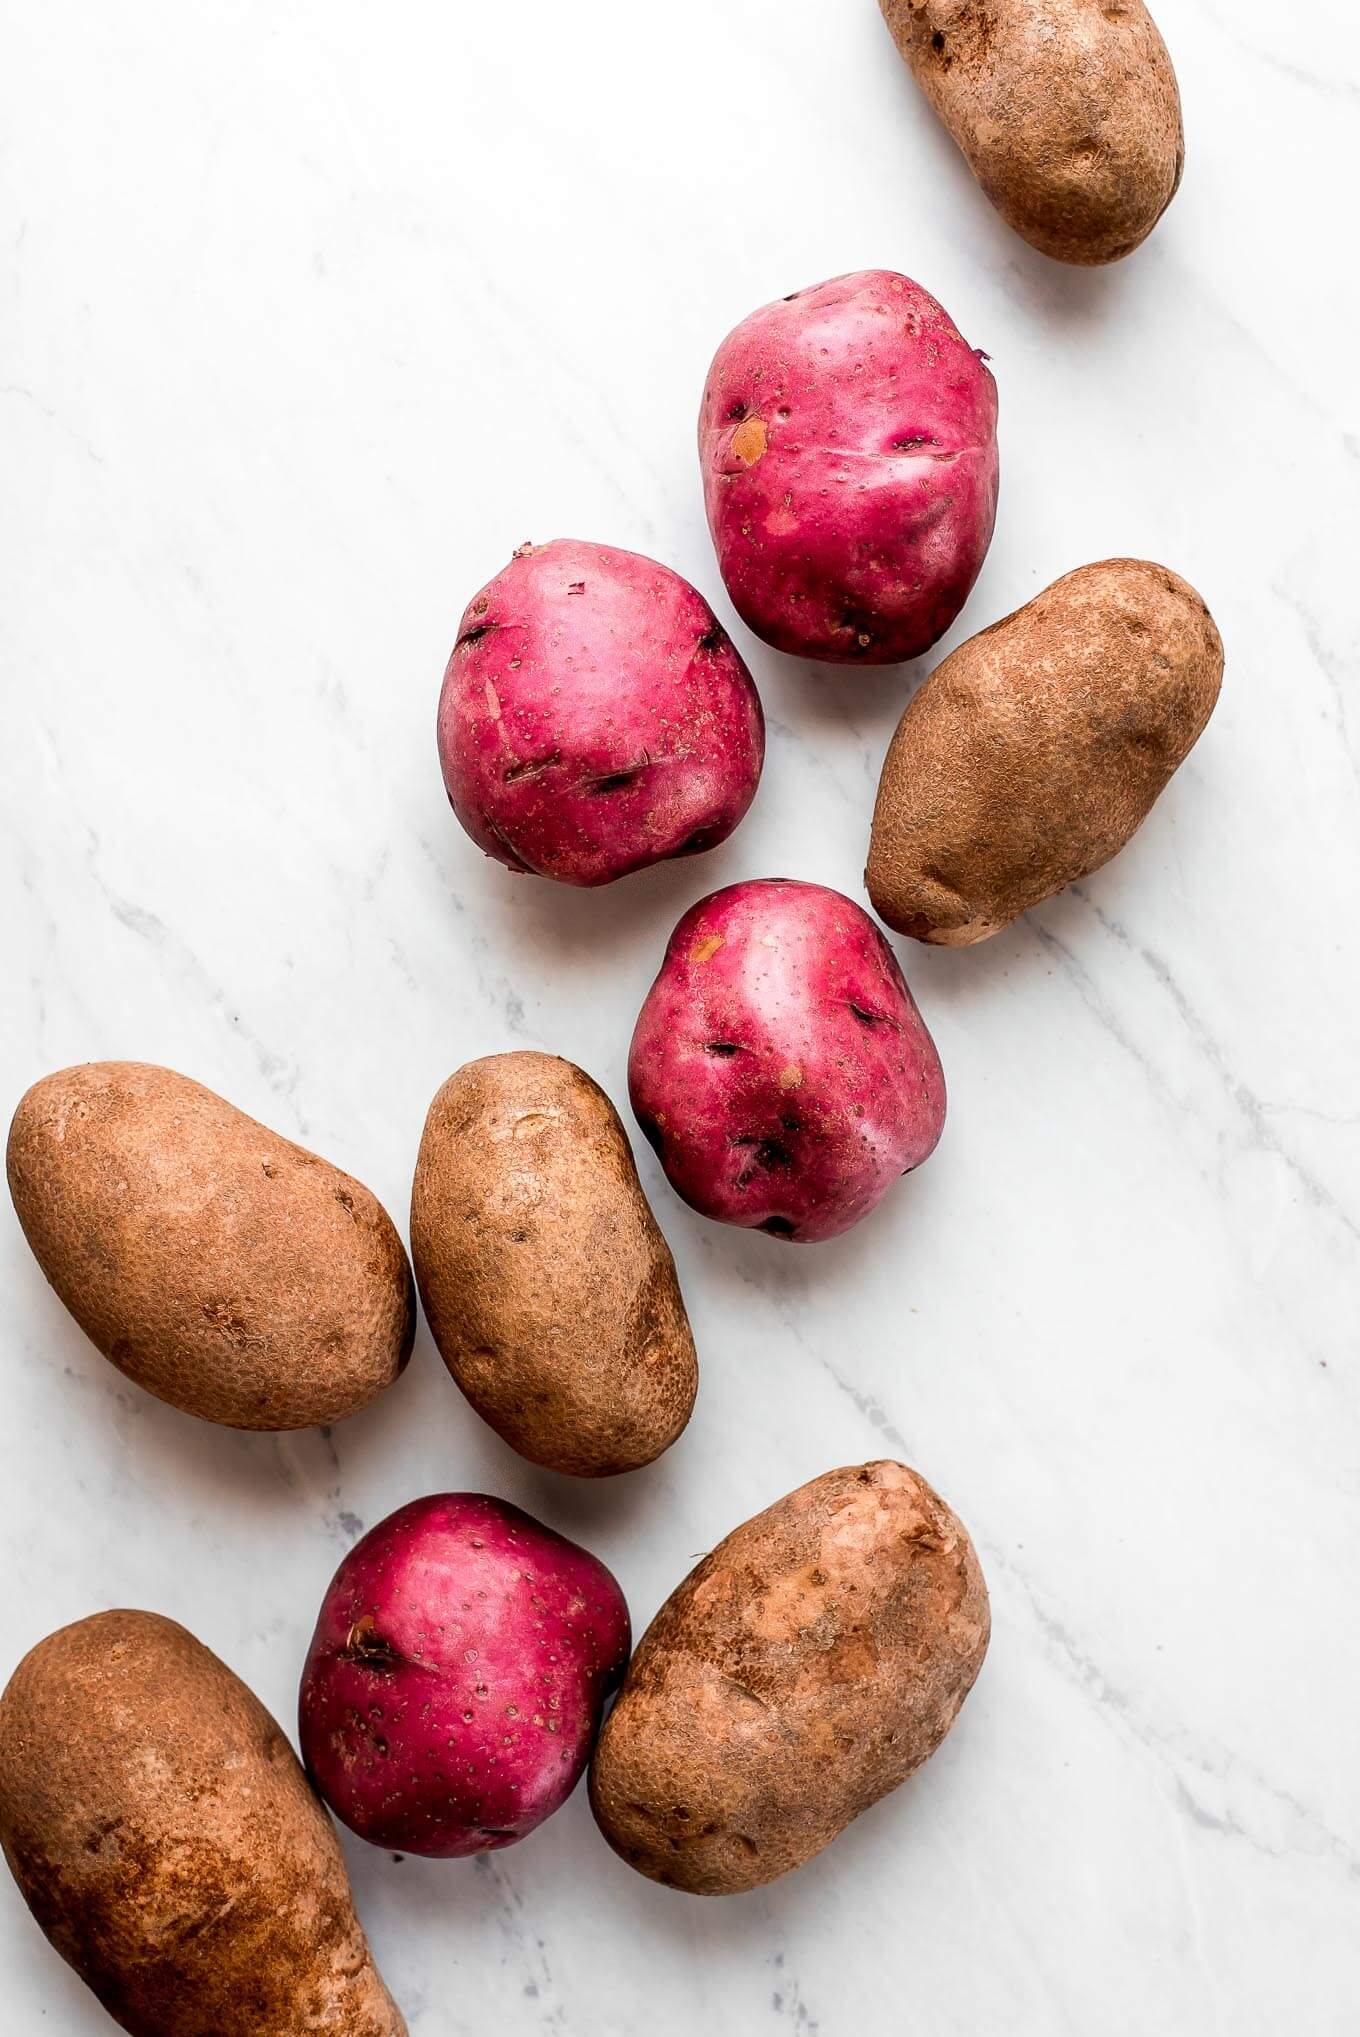 Russet potatoes and red potatoes on a marble surface.